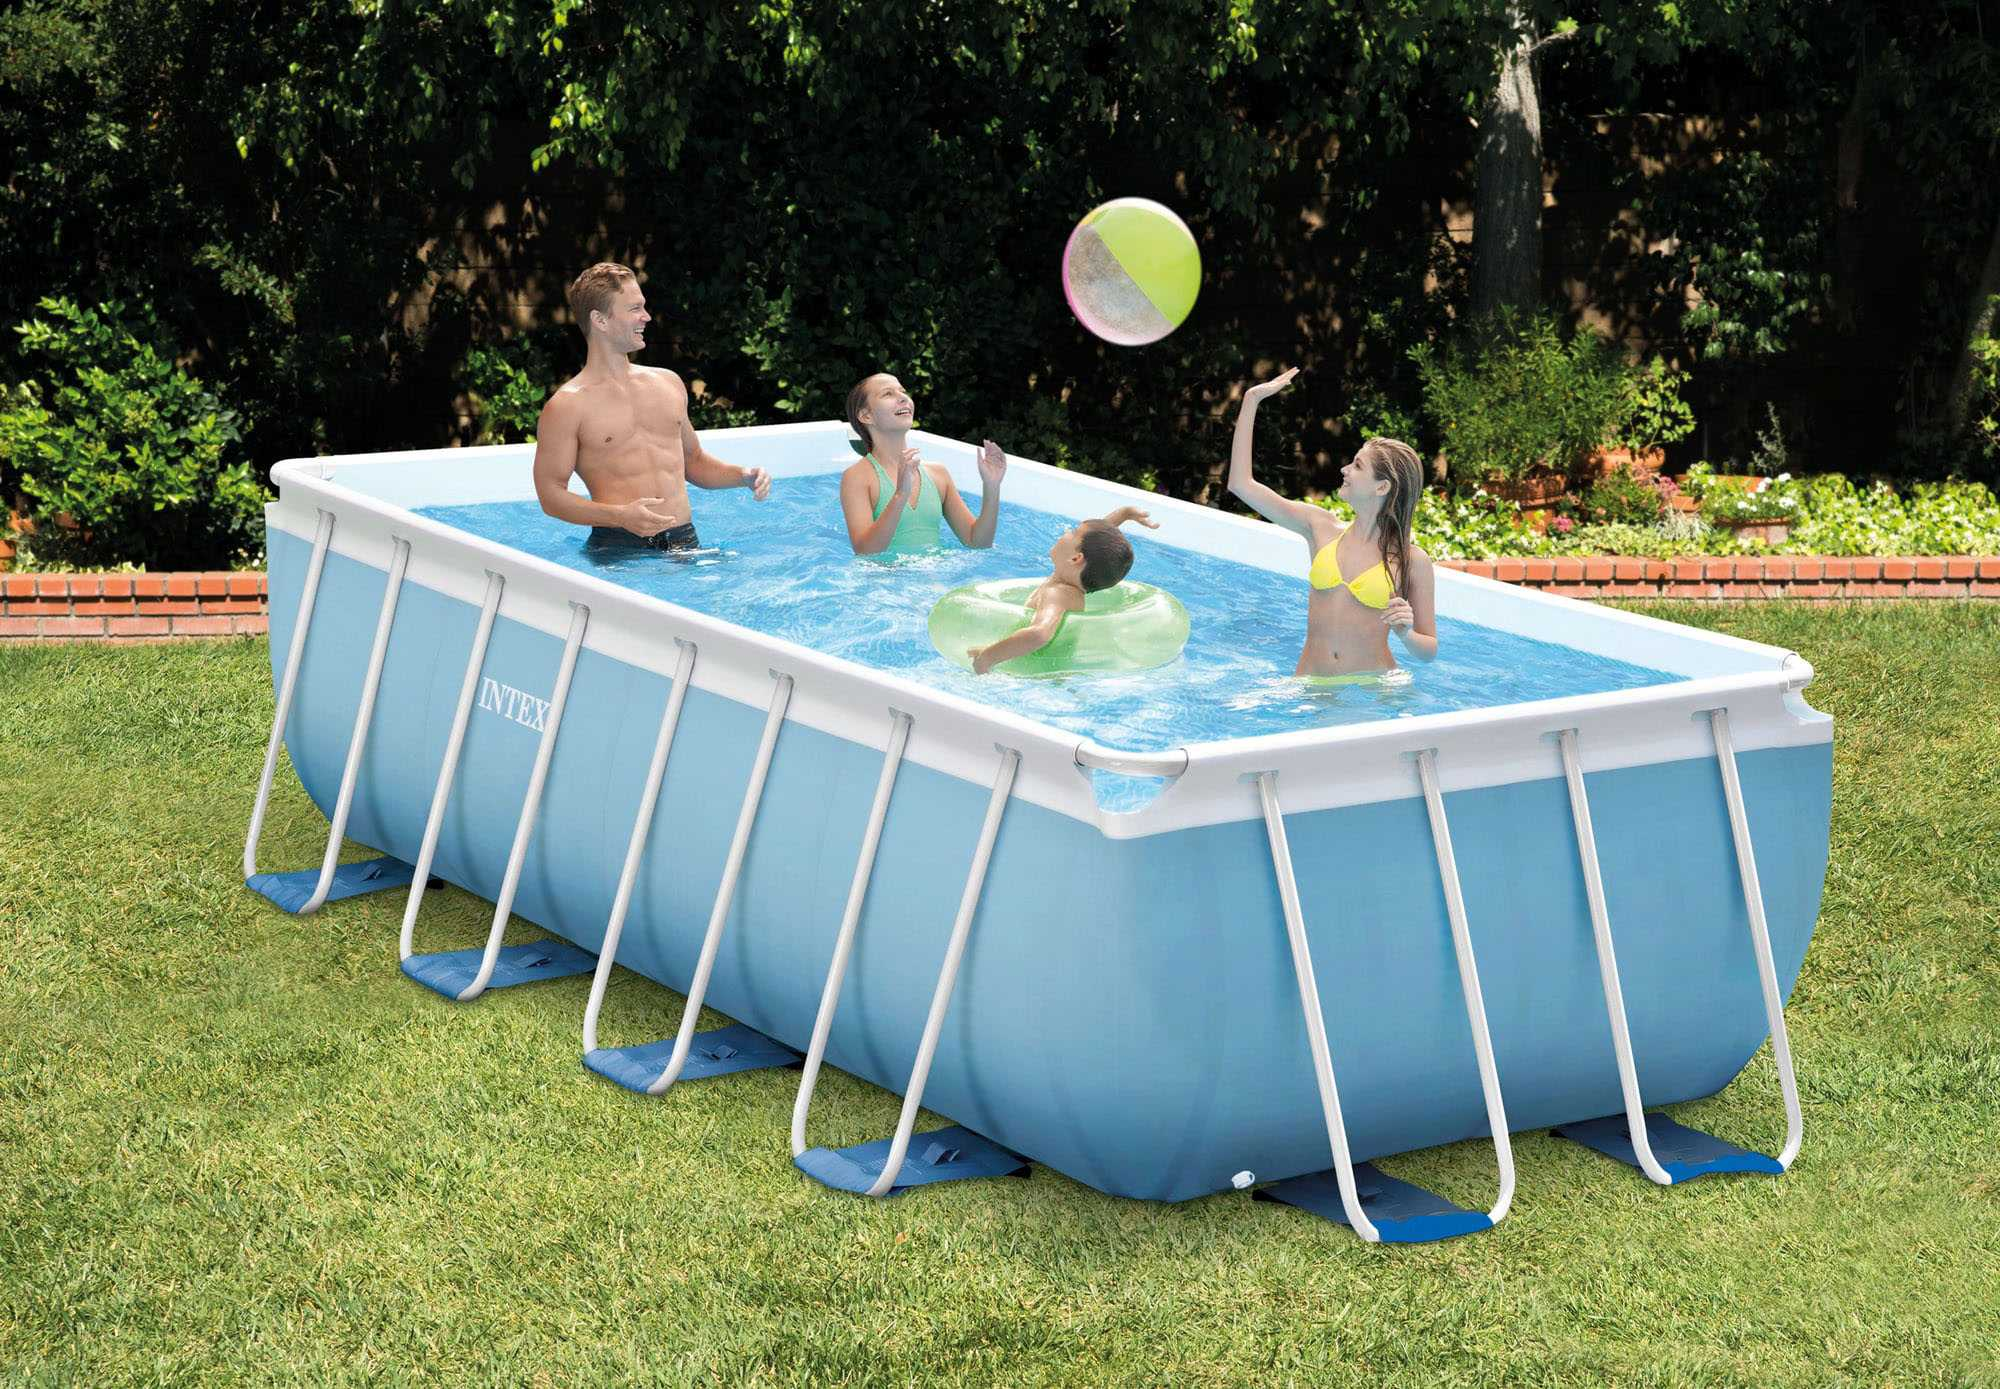 Intex Prism Frame Pool 4.88 x 2.44 x H1.07m | INTEX | Piscine Prism...